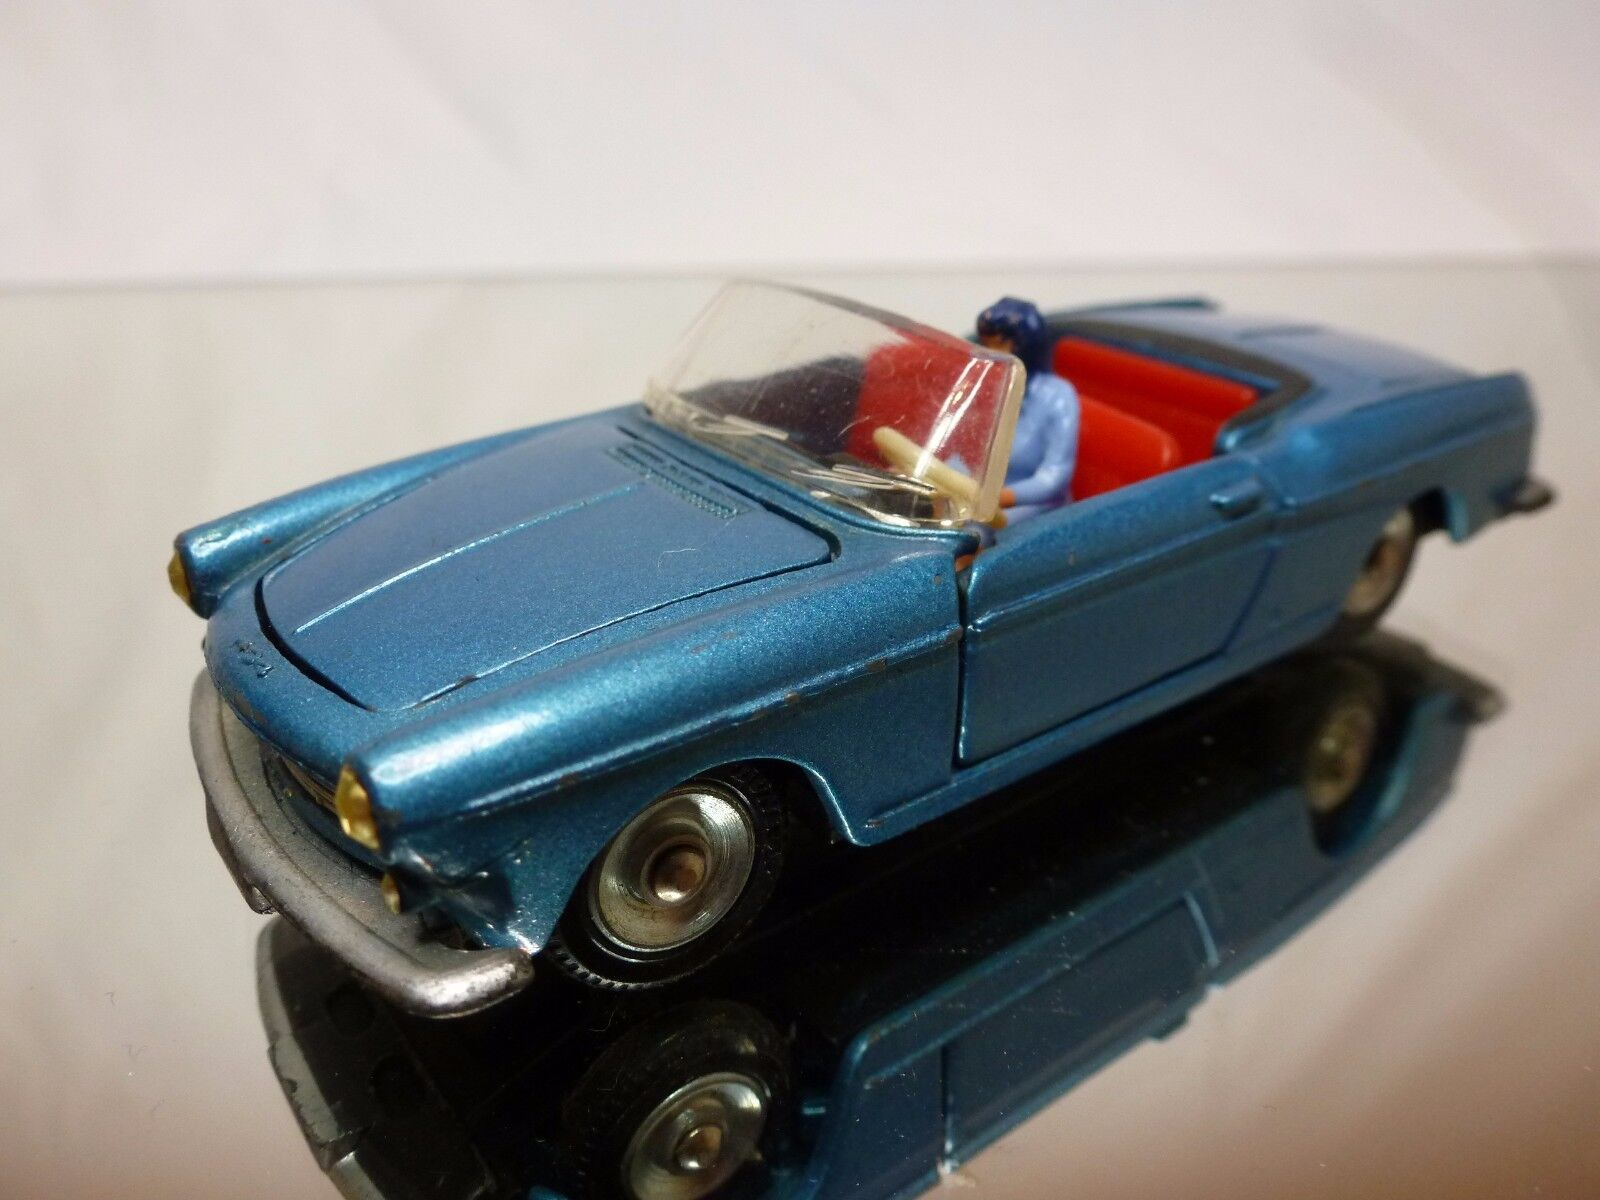 DINKY TOYS  528 PEUGEOT 404 CABRIOLET PININFARINA - blueeE 1 43 RARE - EXCELLENT